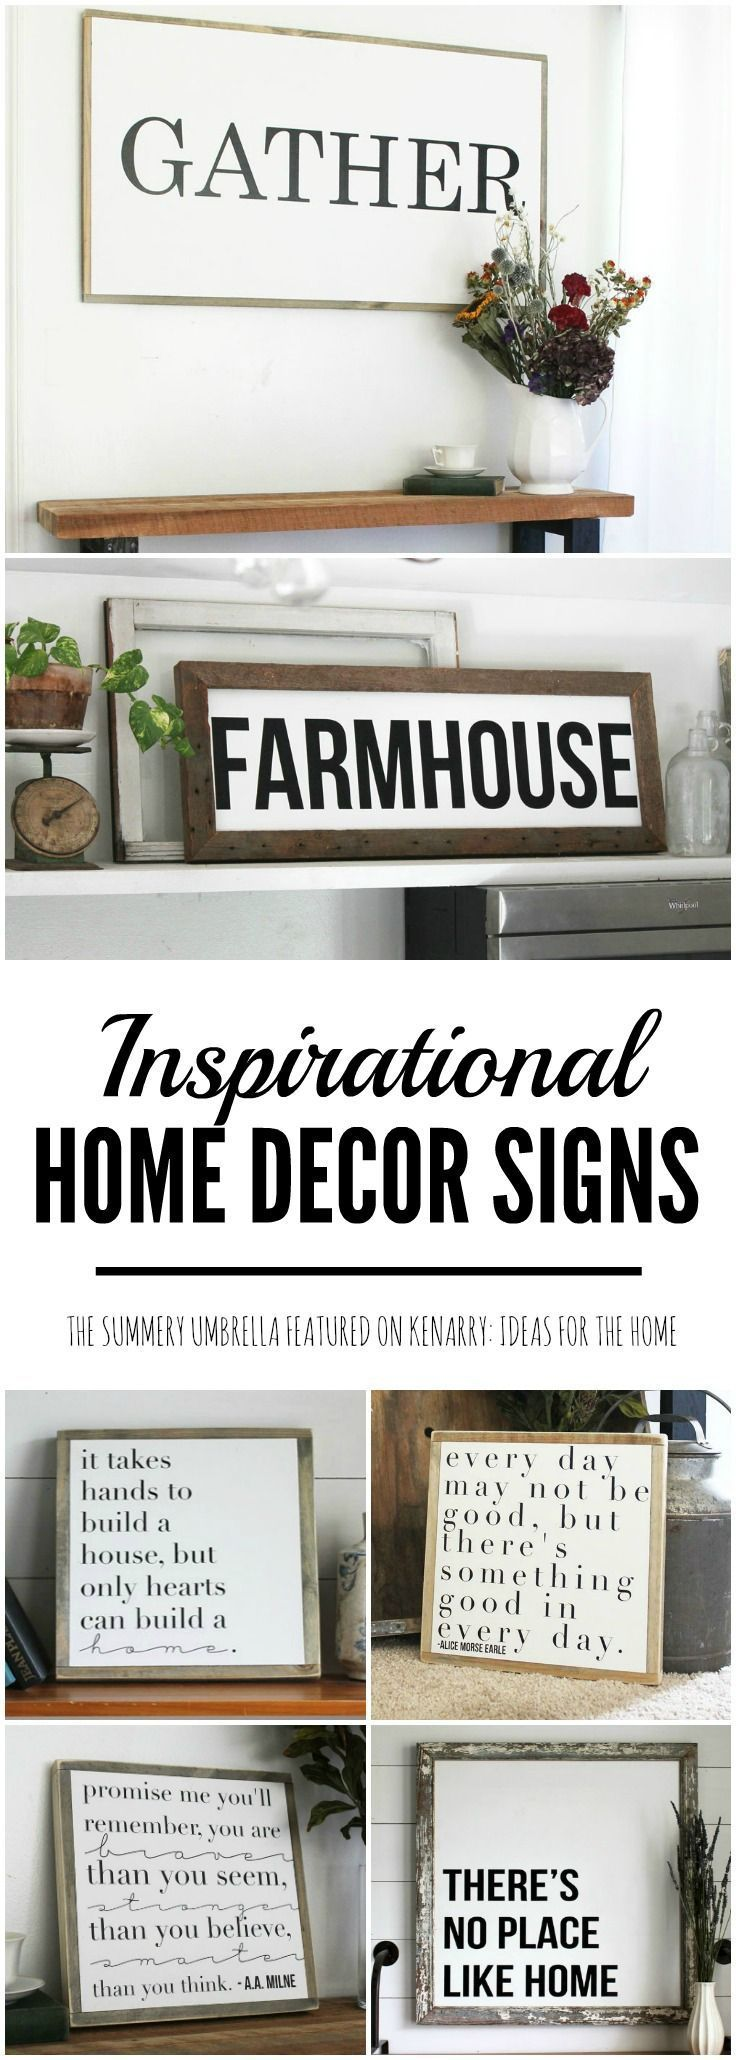 Modern Rustic Classroom : Rustic and modern inspirational signs for your home